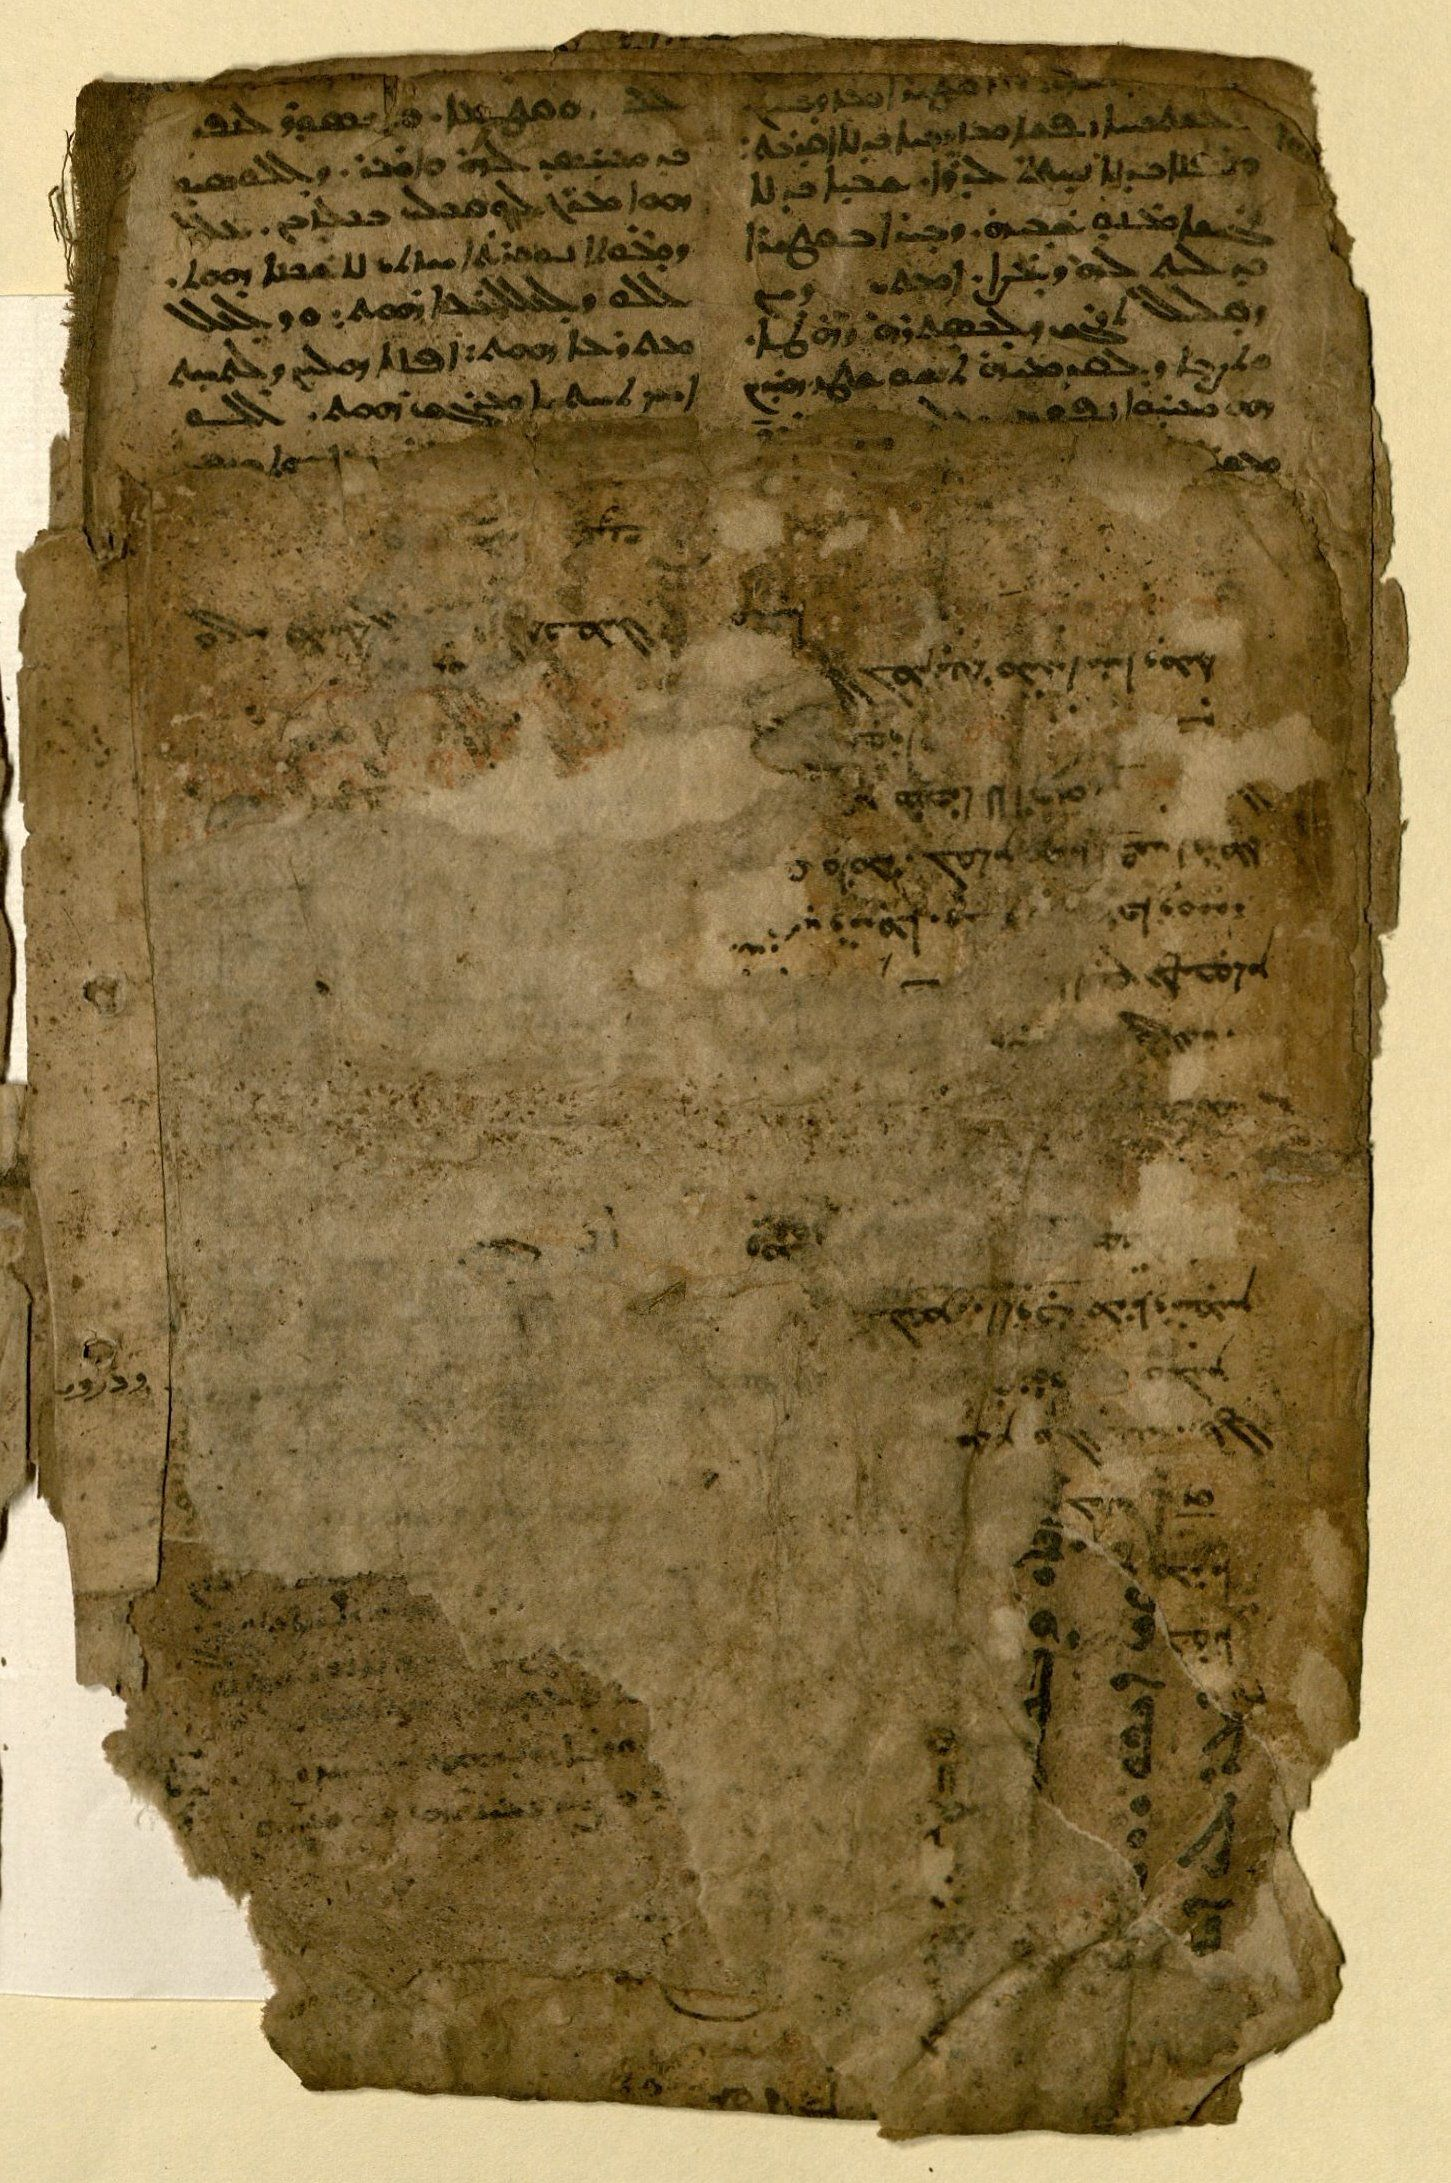 MS Syriac 108 (18)